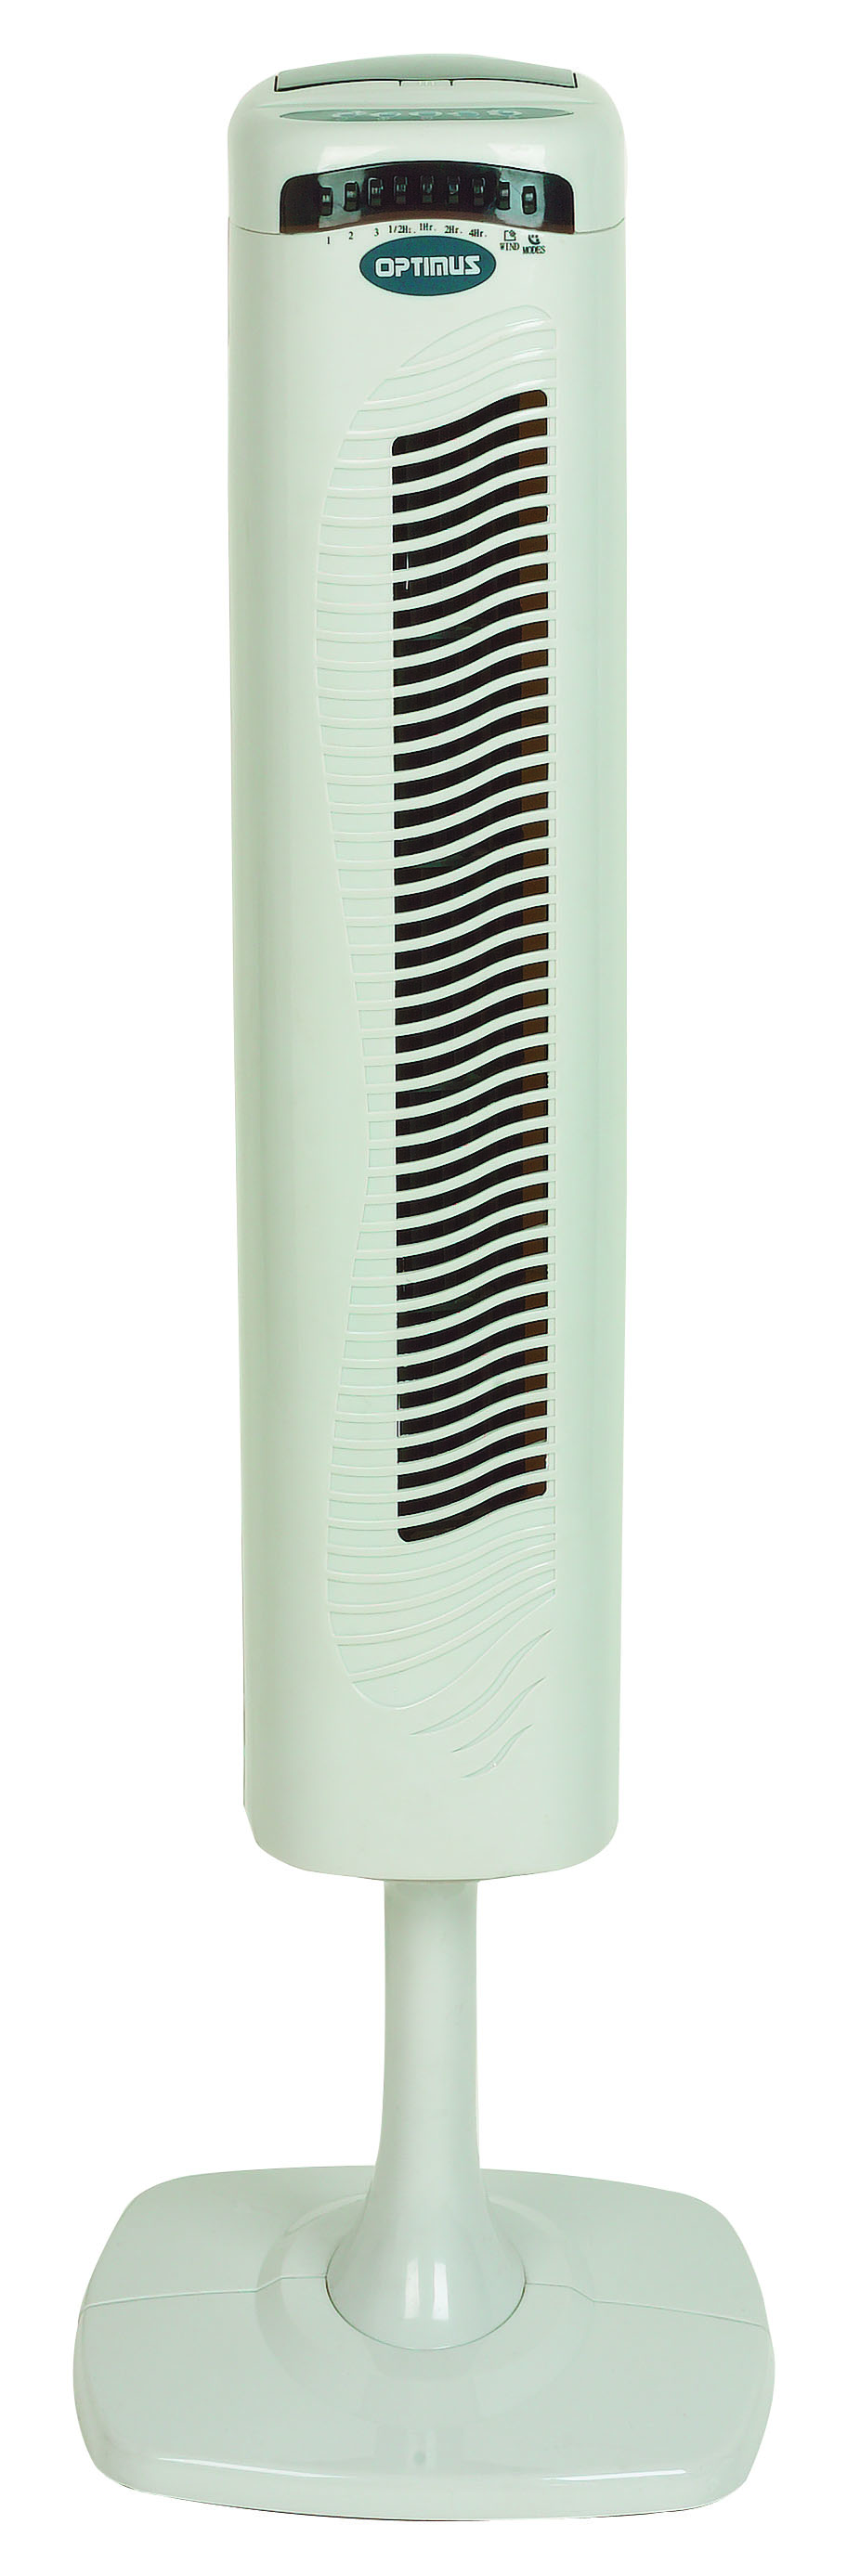 Optimus f7336s  fan 40inch tower with remote and led